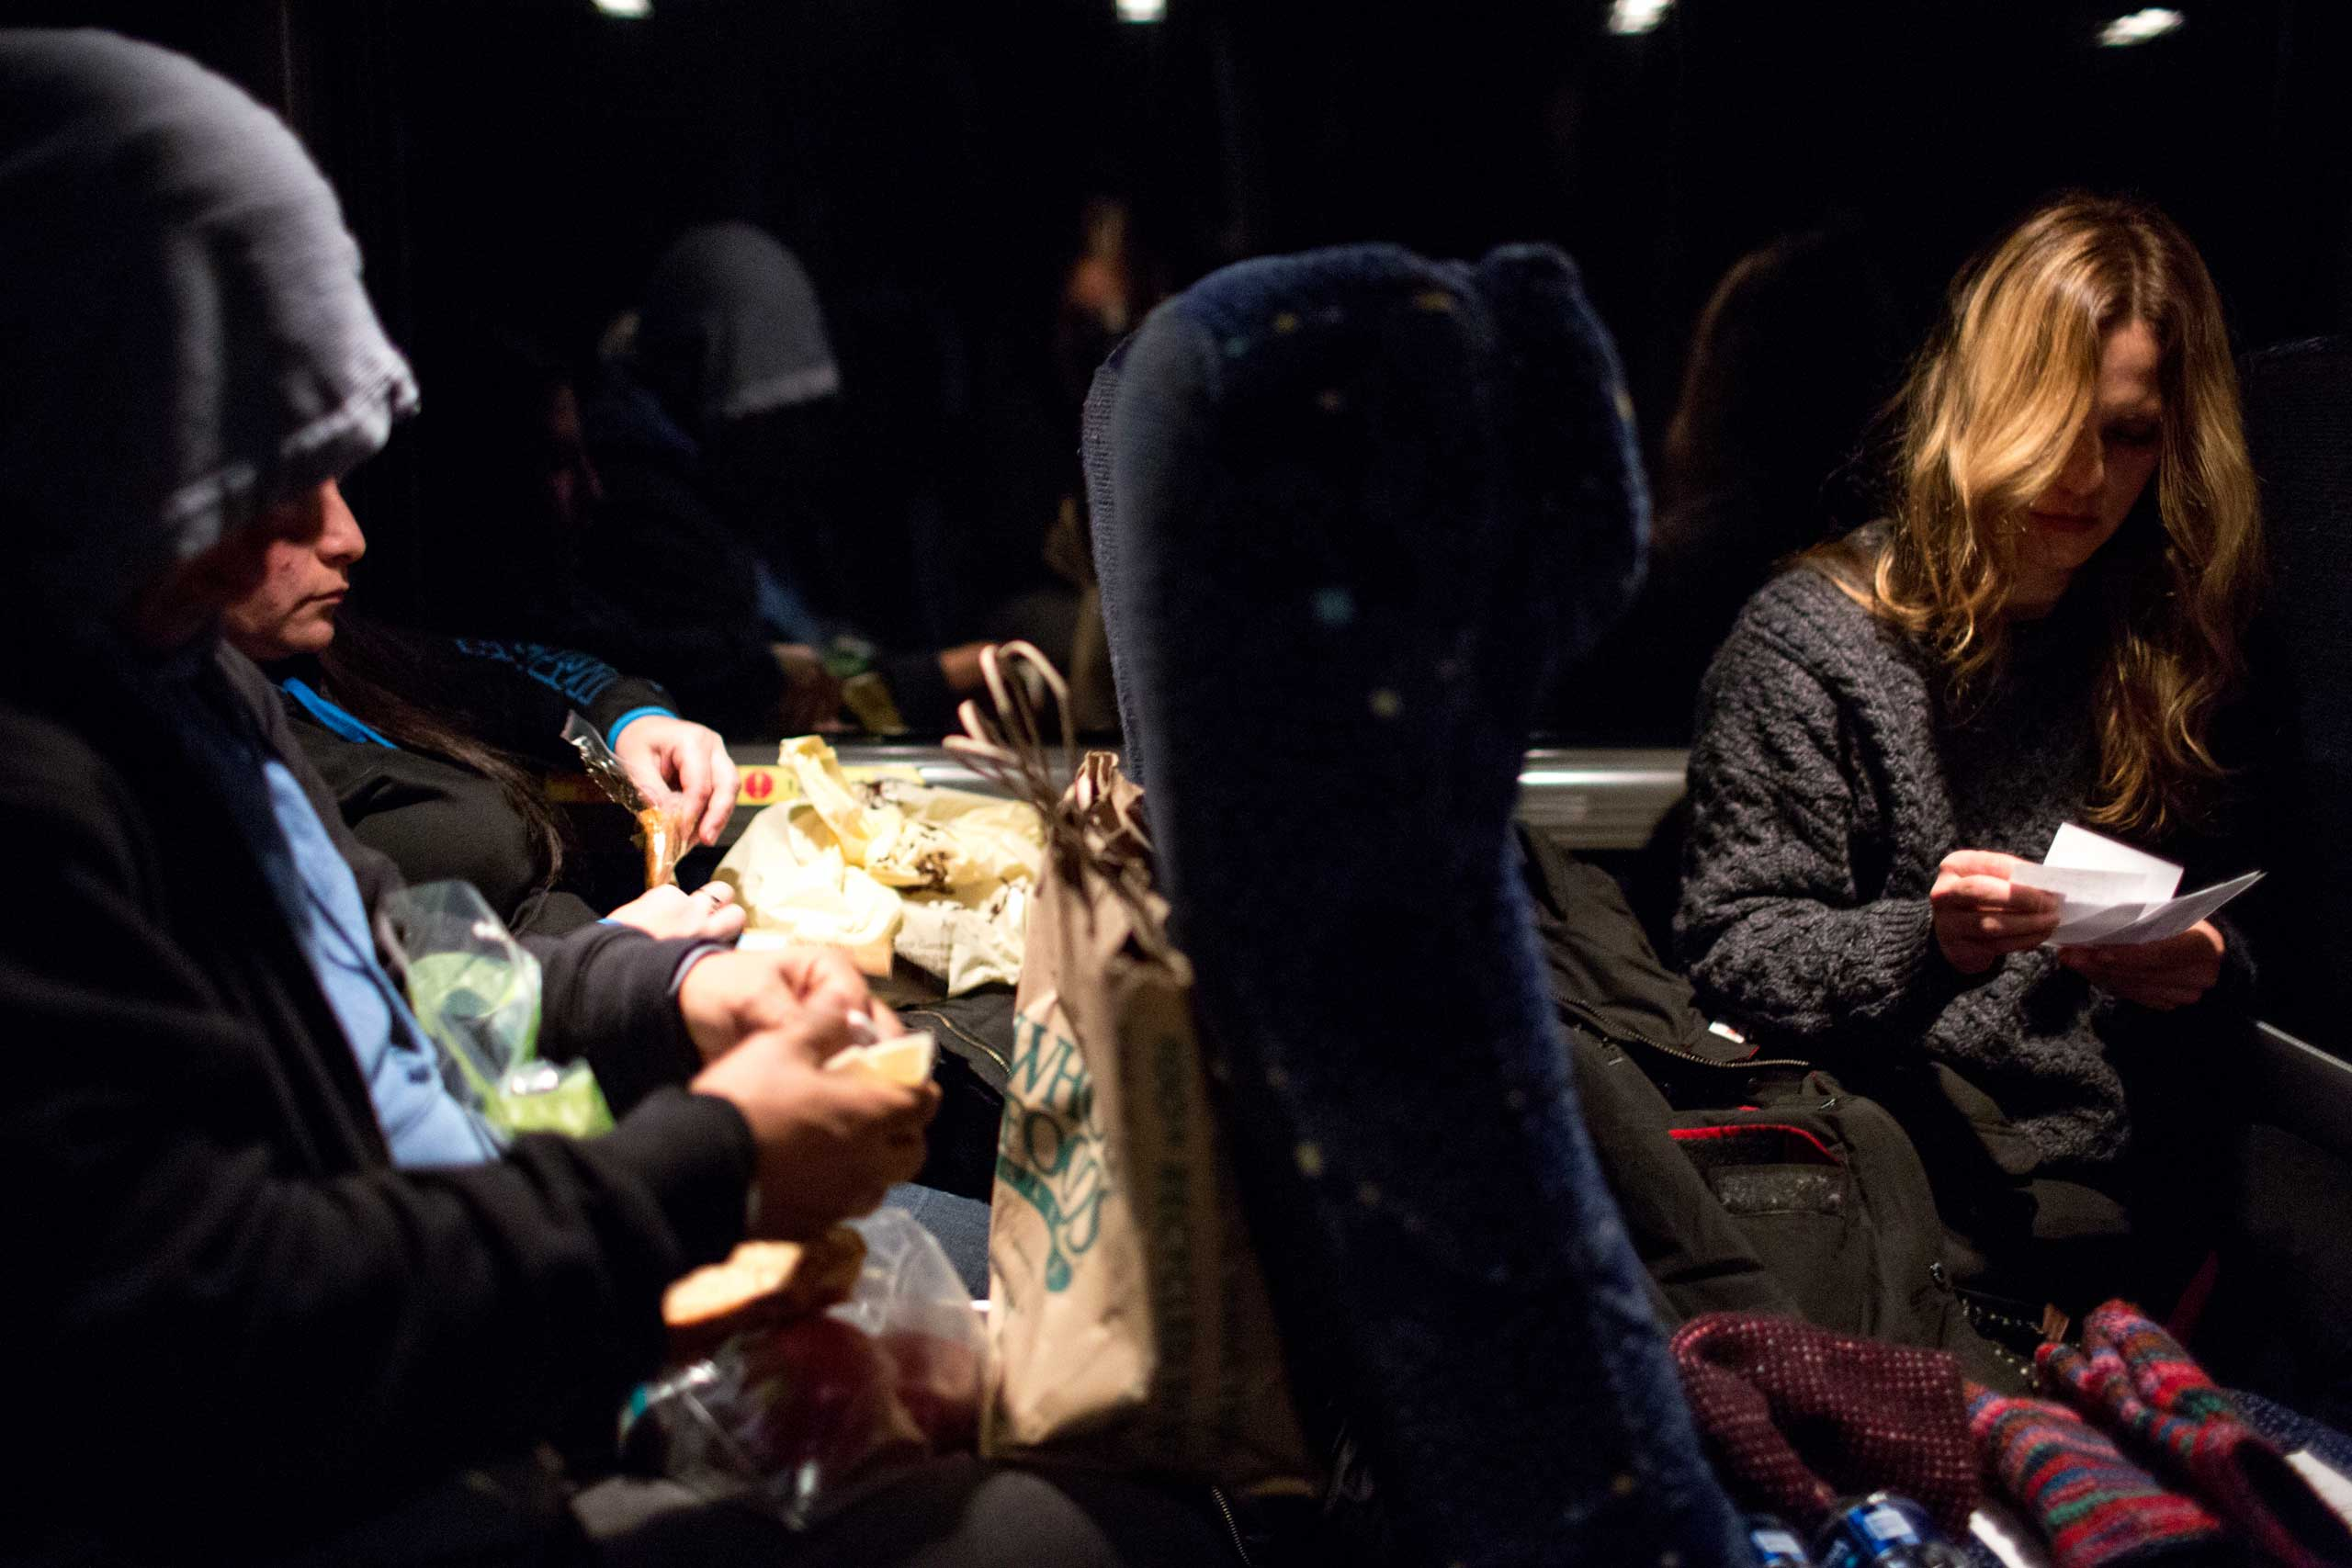 5:28 AM: Anna plans her protest sign while other activists prepare their lunches around 5am as the bus approaches D.C.